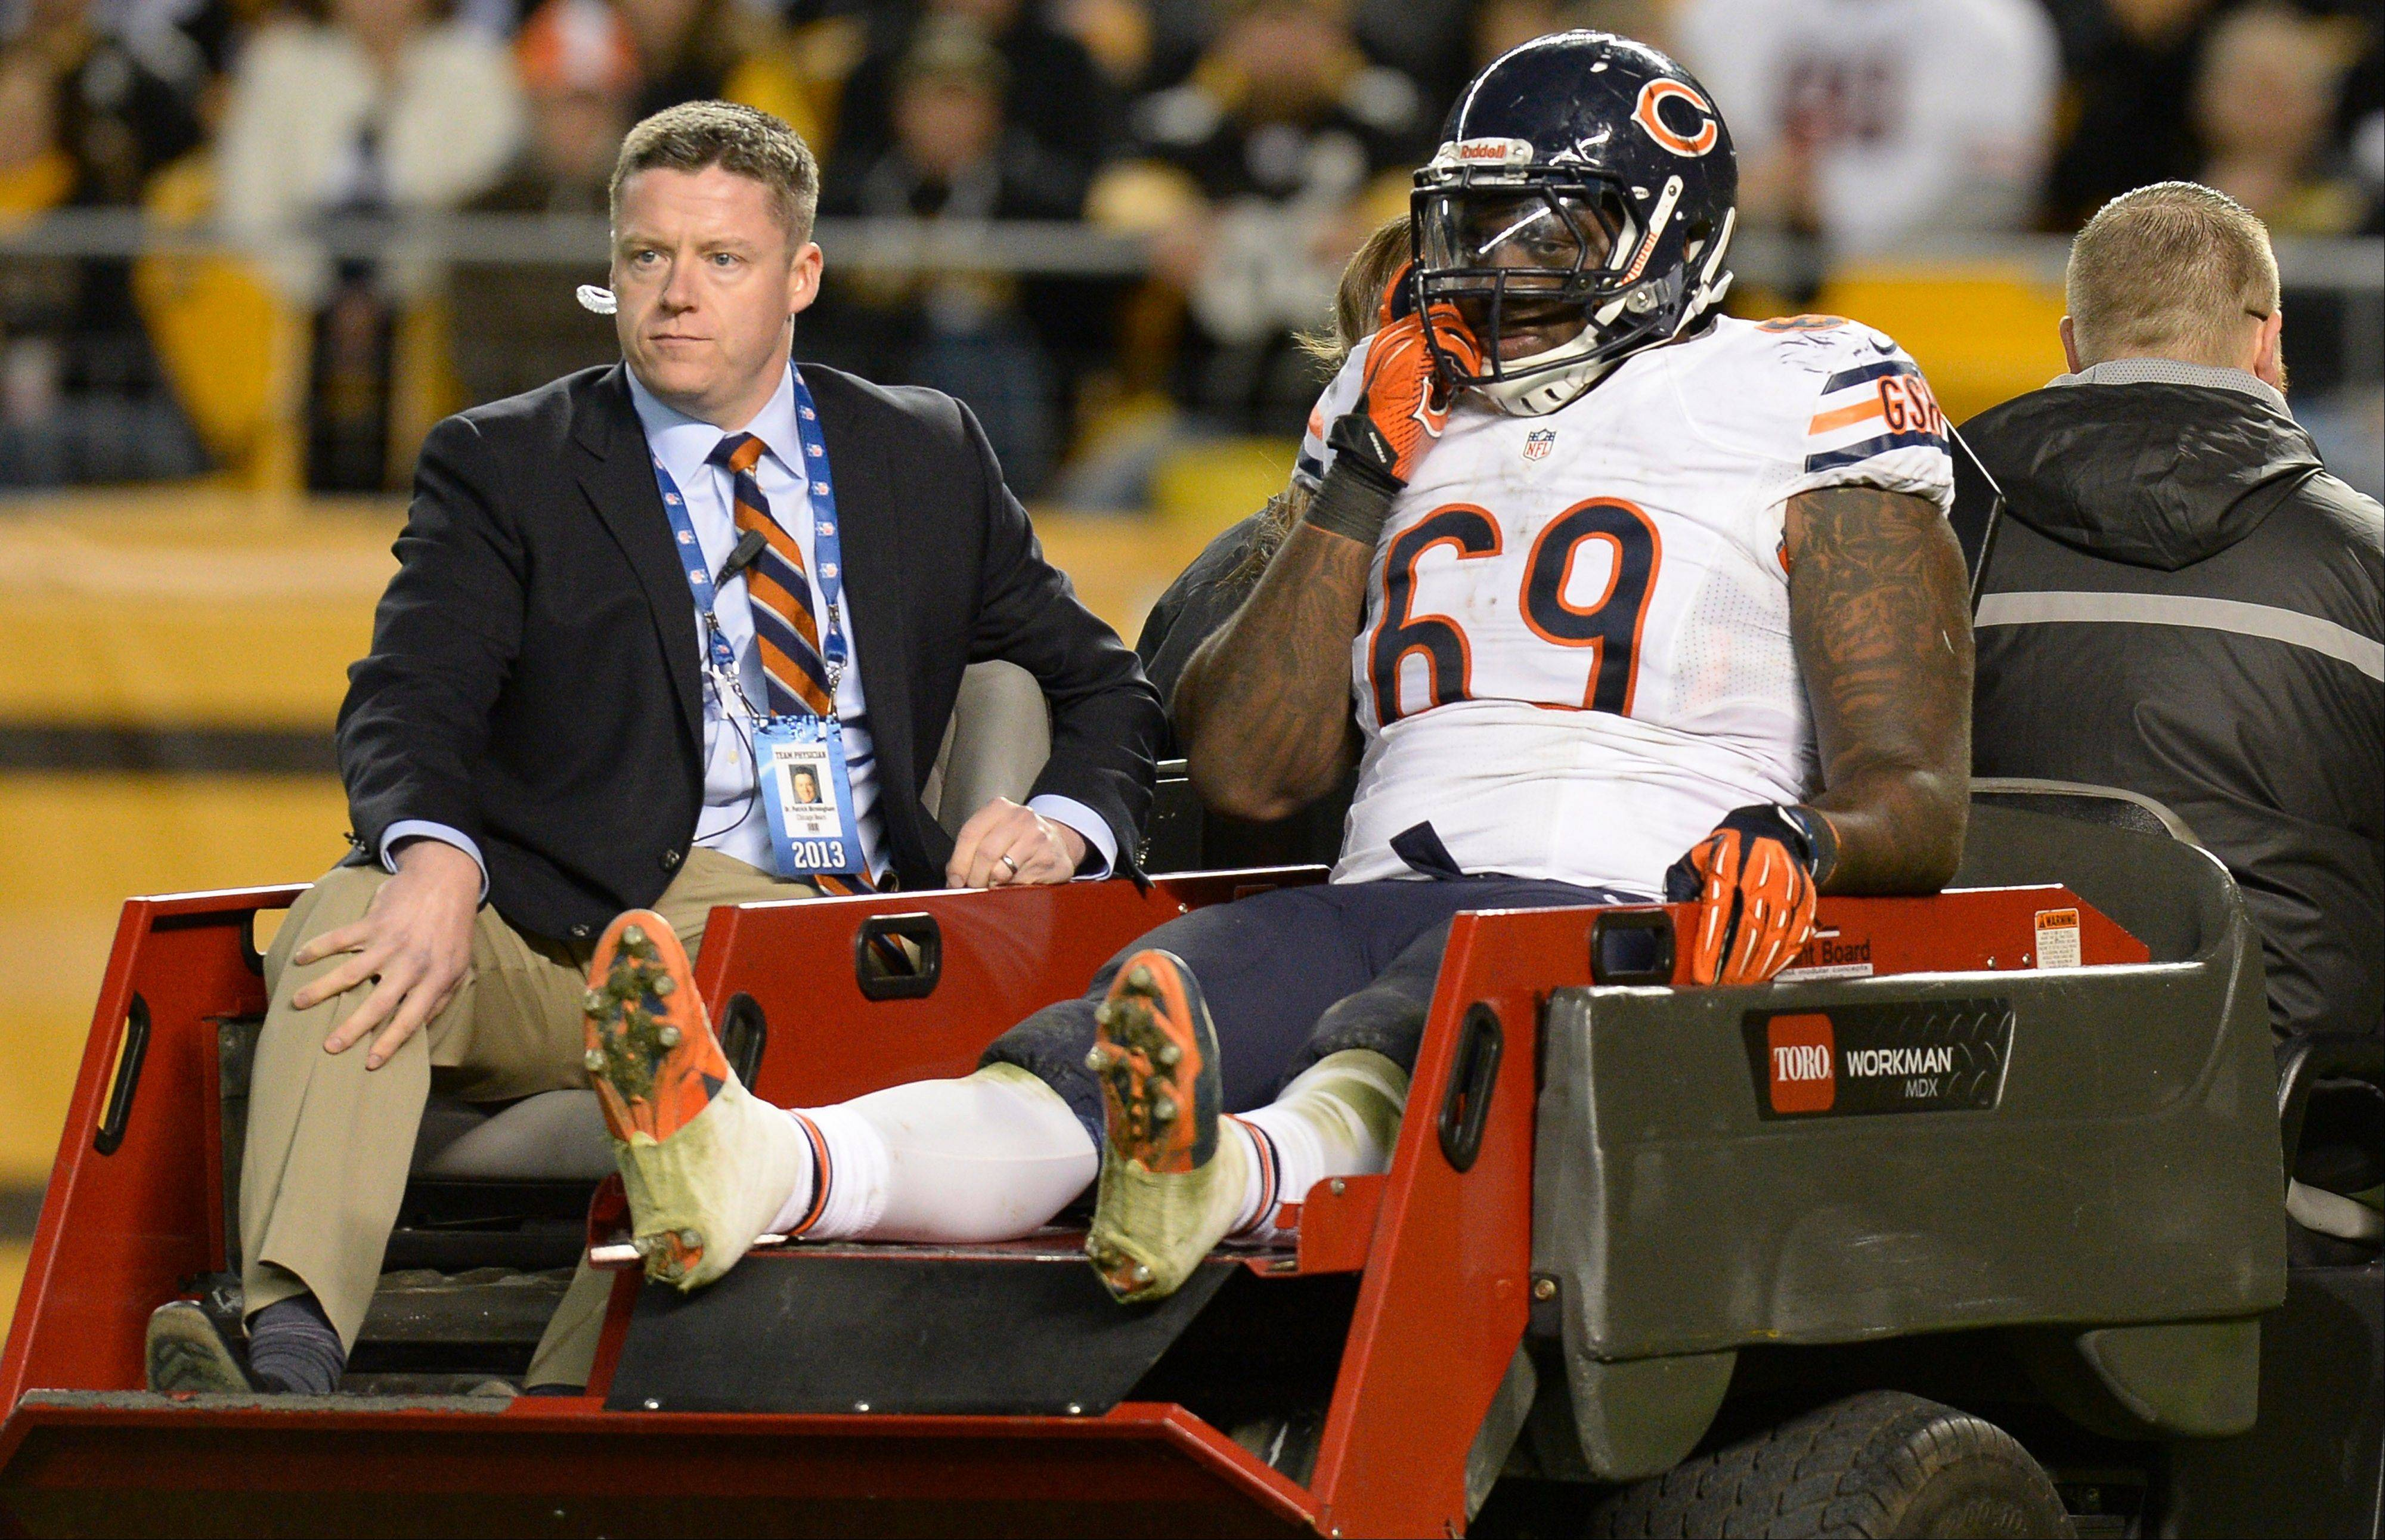 Chicago Bears defensive tackle Henry Melton (69) is carted off after being injured in the third quarter of an NFL football game against the Pittsburgh Steelers on Sunday, Sept. 22, 2013, in Pittsburgh. (AP Photo/Don Wright)